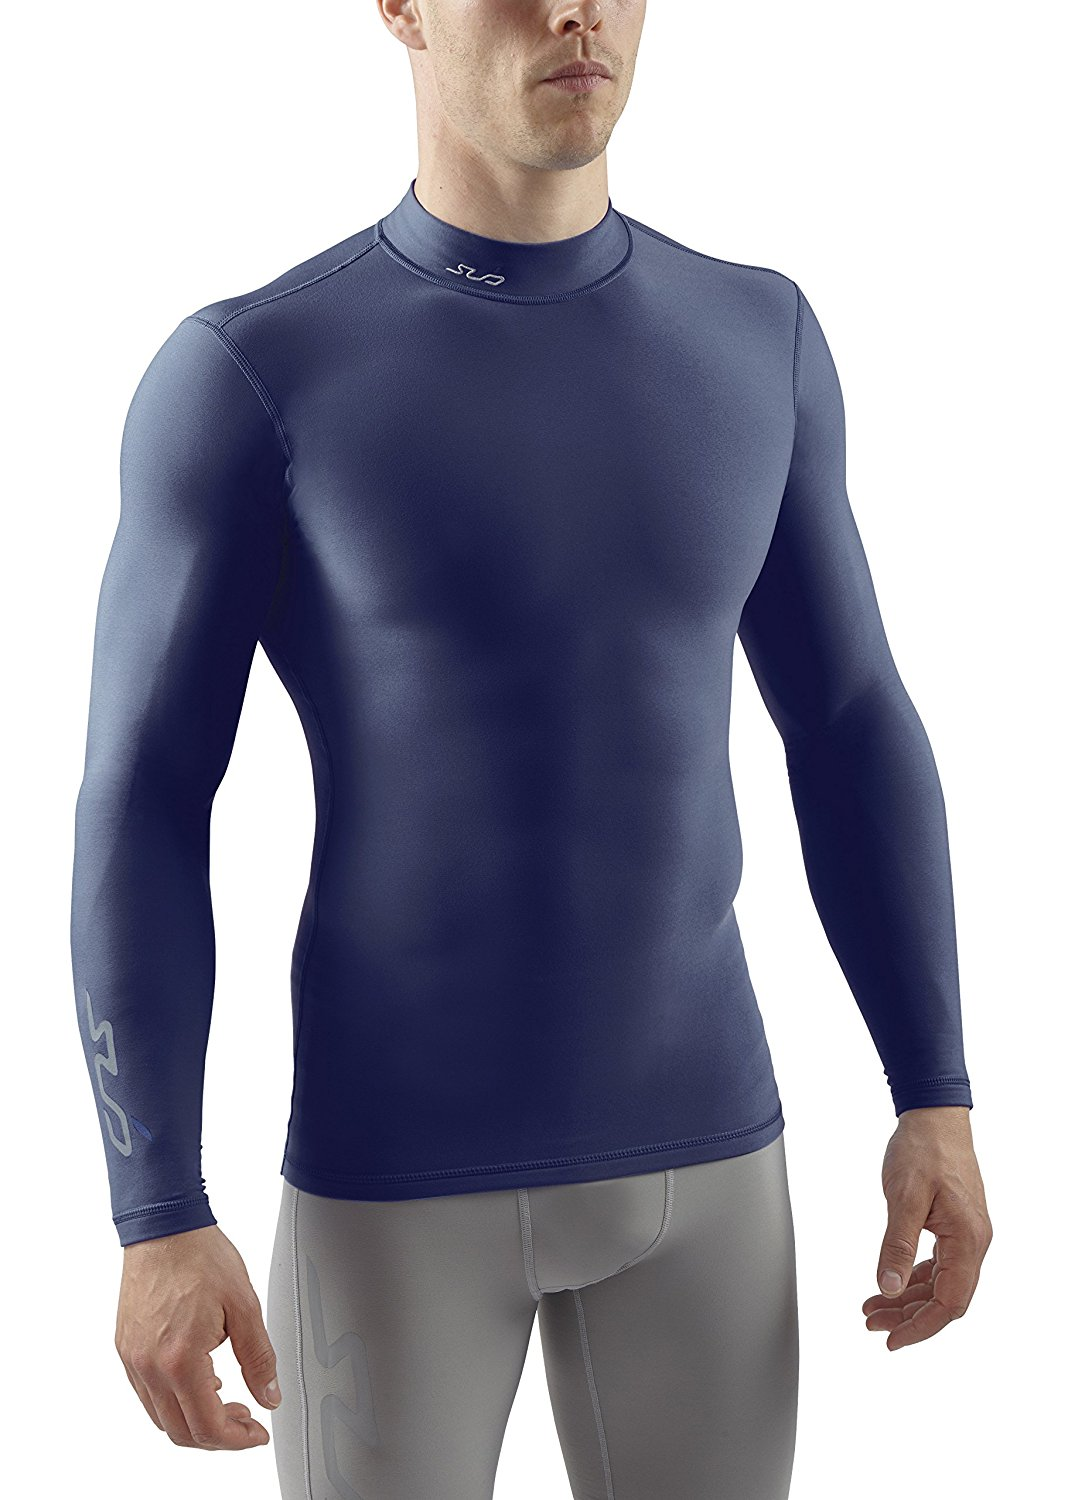 Sub Sports Mens Winter Warm Vest Mock Turtle Neck Long Sleeve Thermal Base Layer